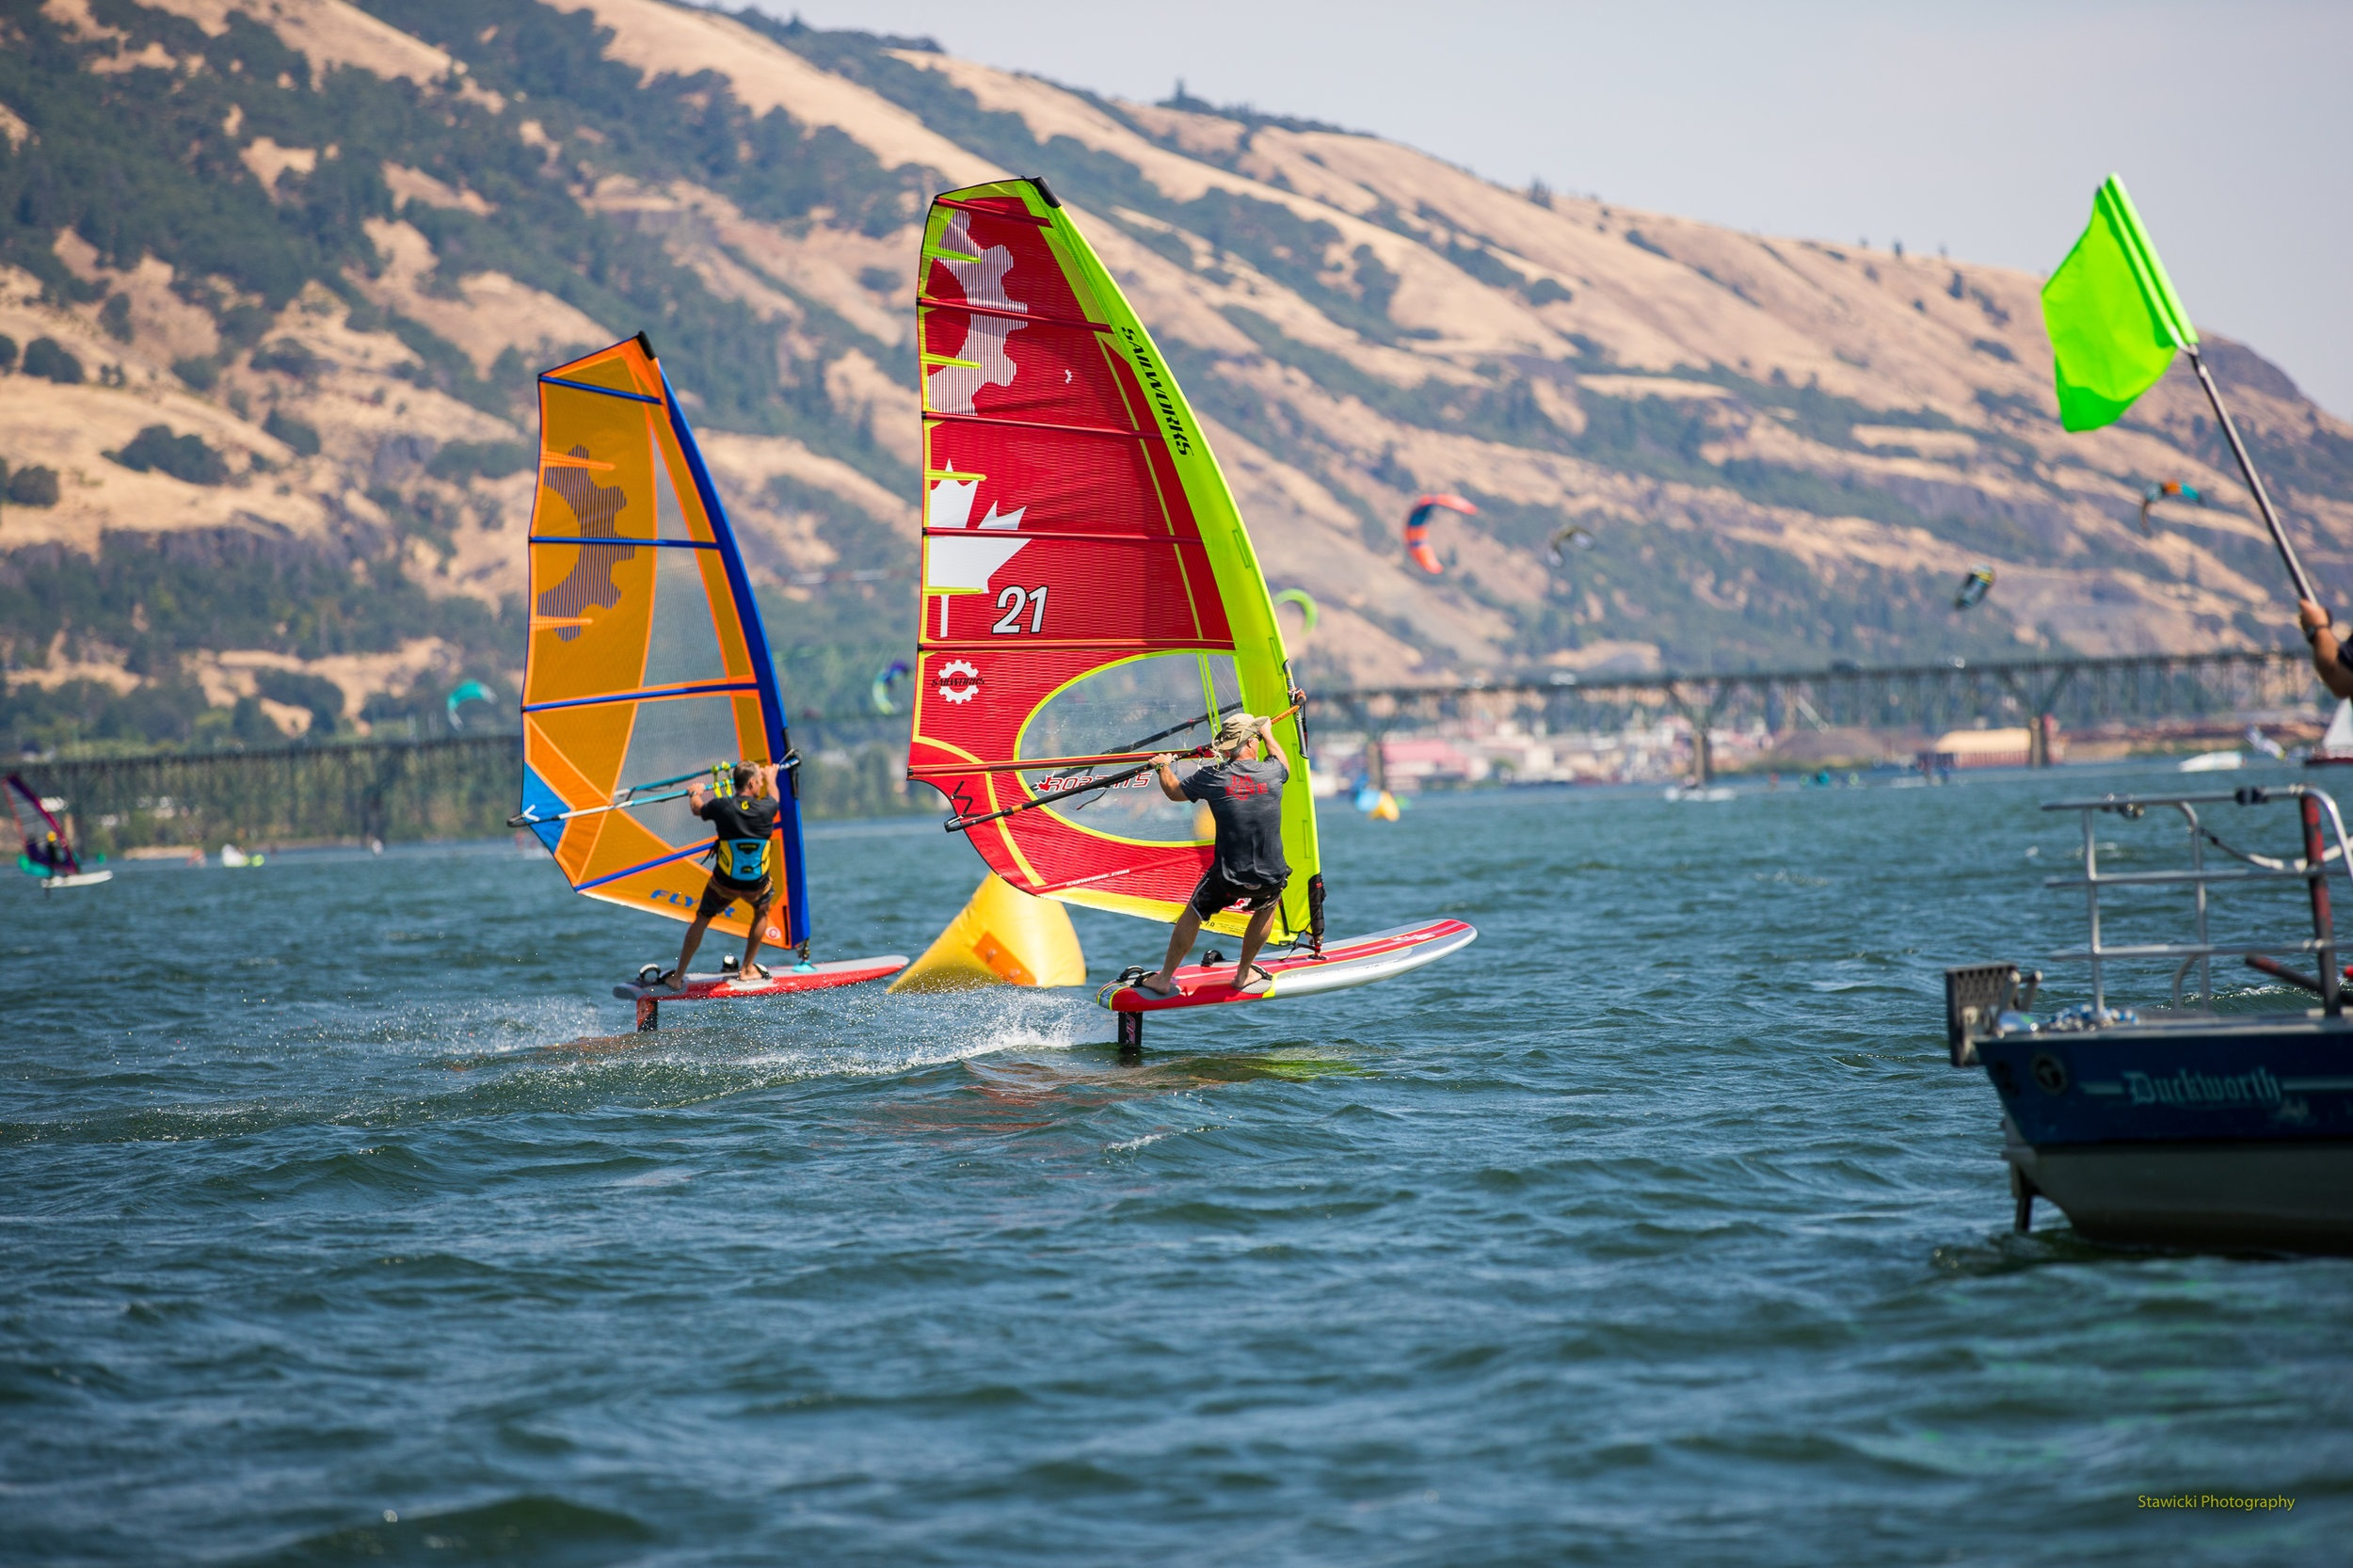 Foil - The future of windsurfing is here. Go sailing in lighter conditions than ever before.